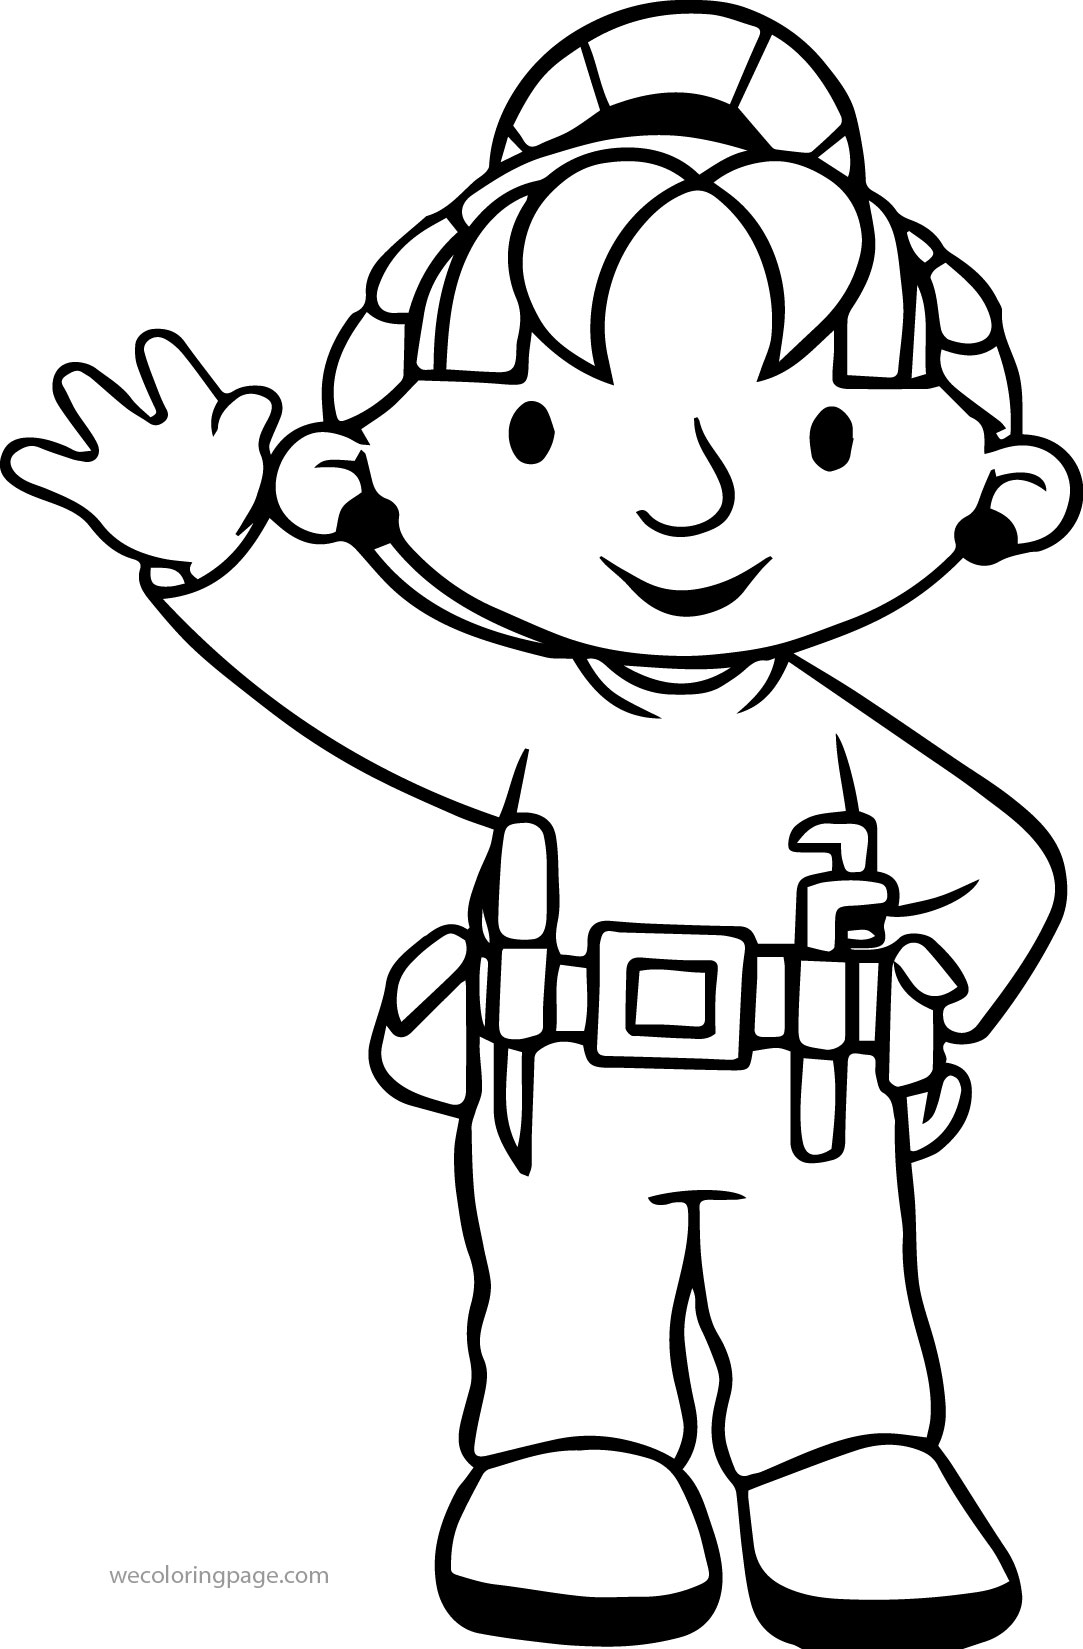 wendy coloring pages - photo#28